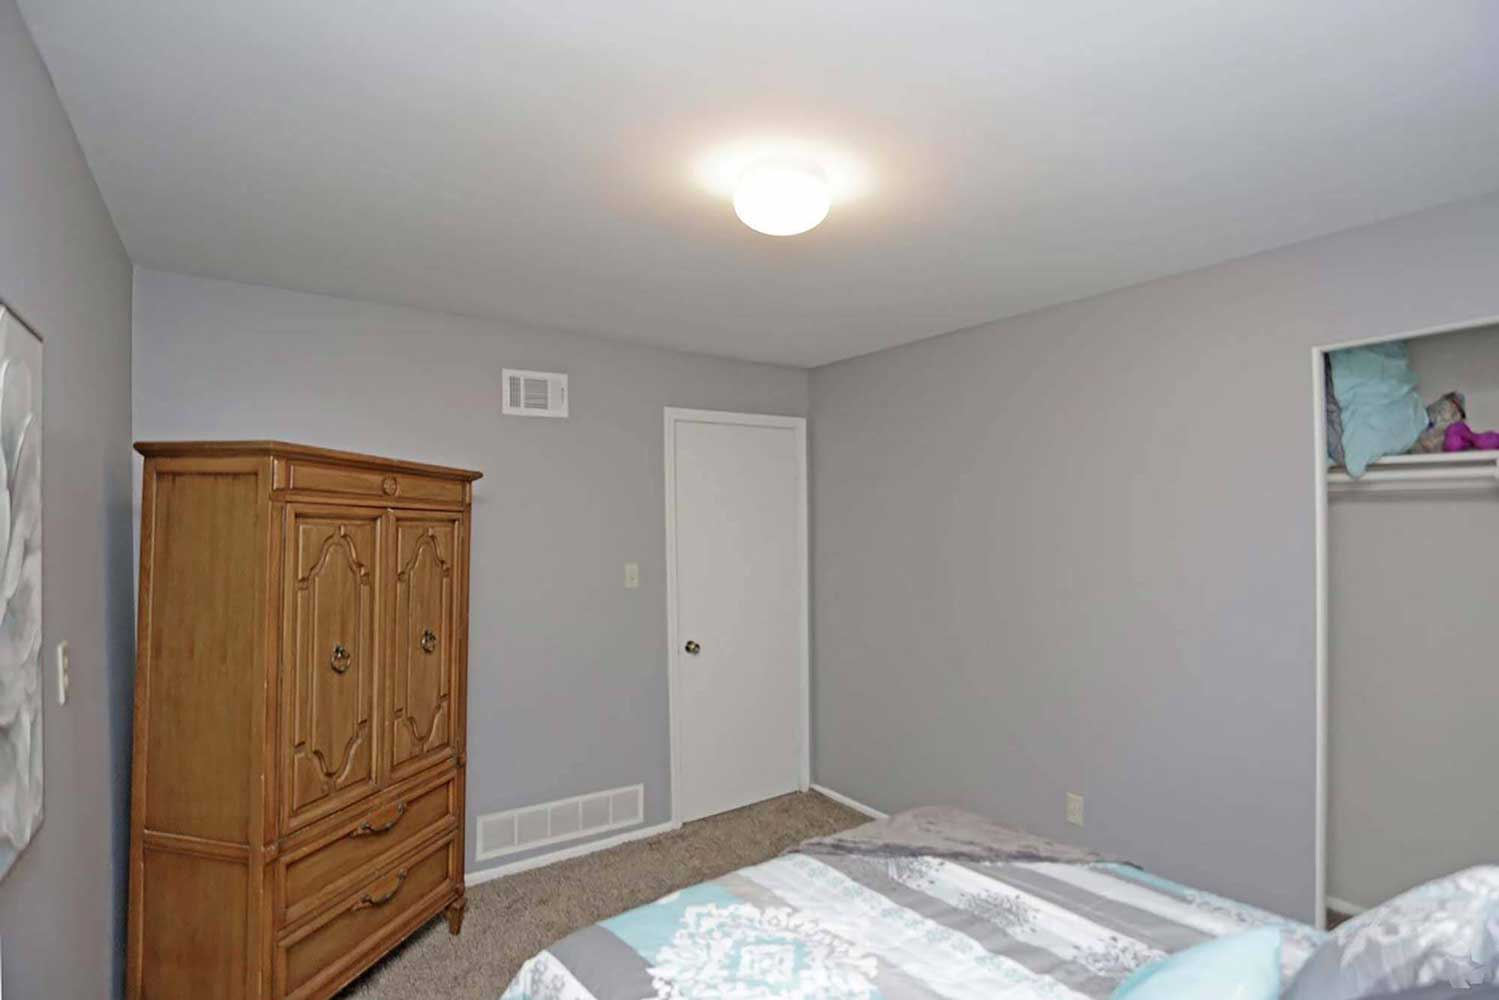 Cozy Bedrooms at Parkville Place Apartments in Parkville, MO